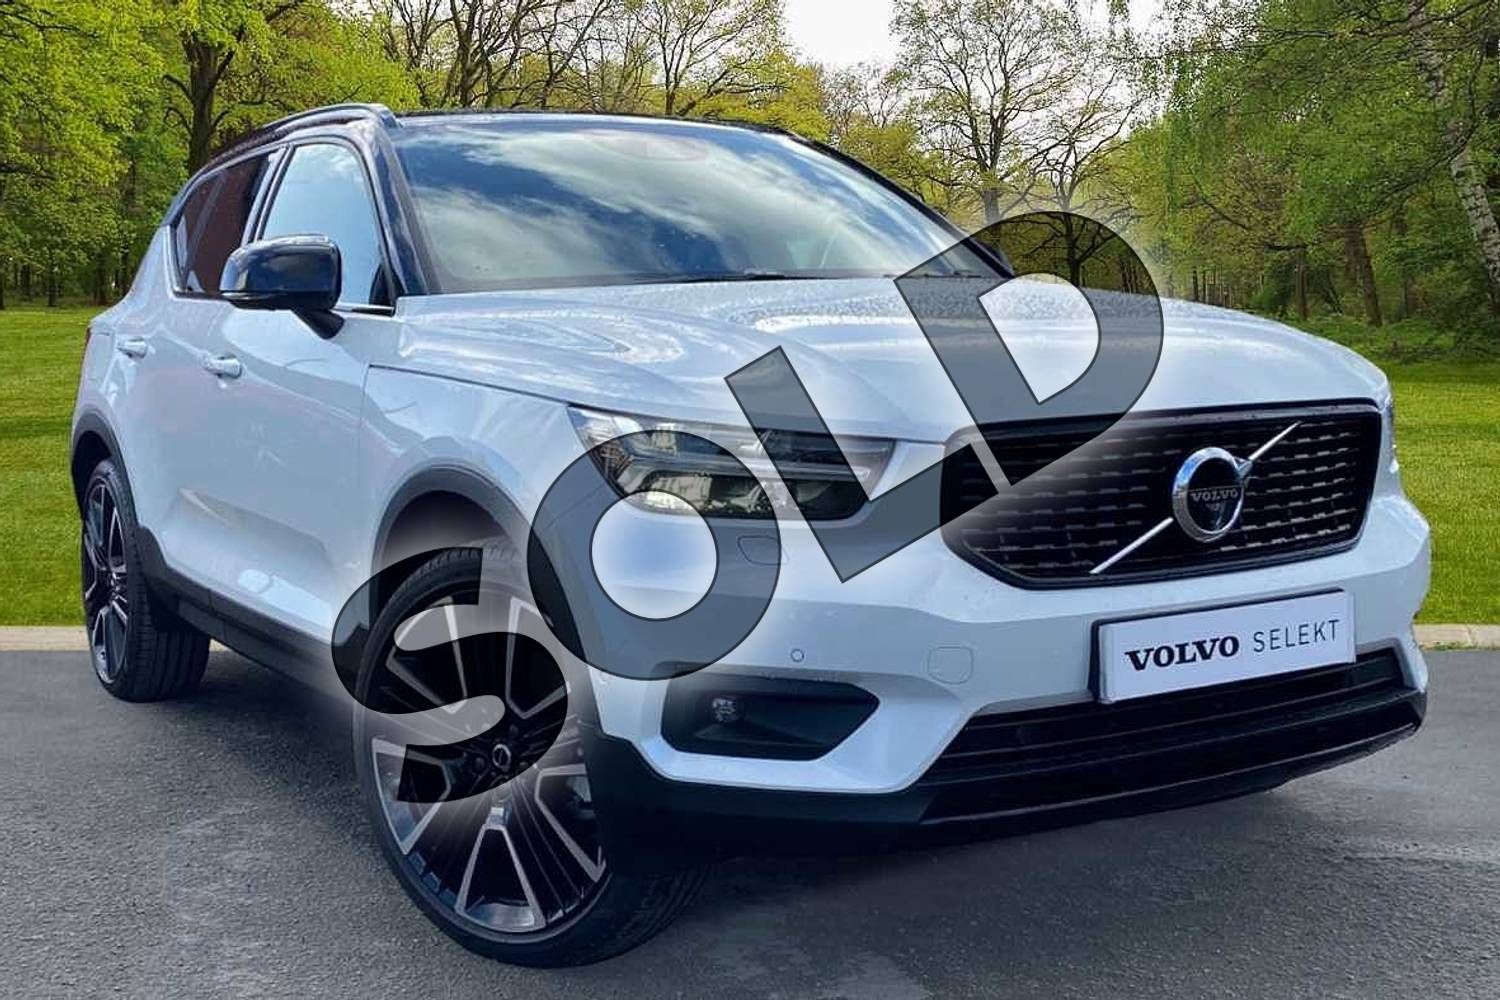 2021 Volvo XC40 Estate 1.5 T5 Recharge PHEV R DESIGN Pro 5dr Auto in Crystal White at Listers Volvo Worcester